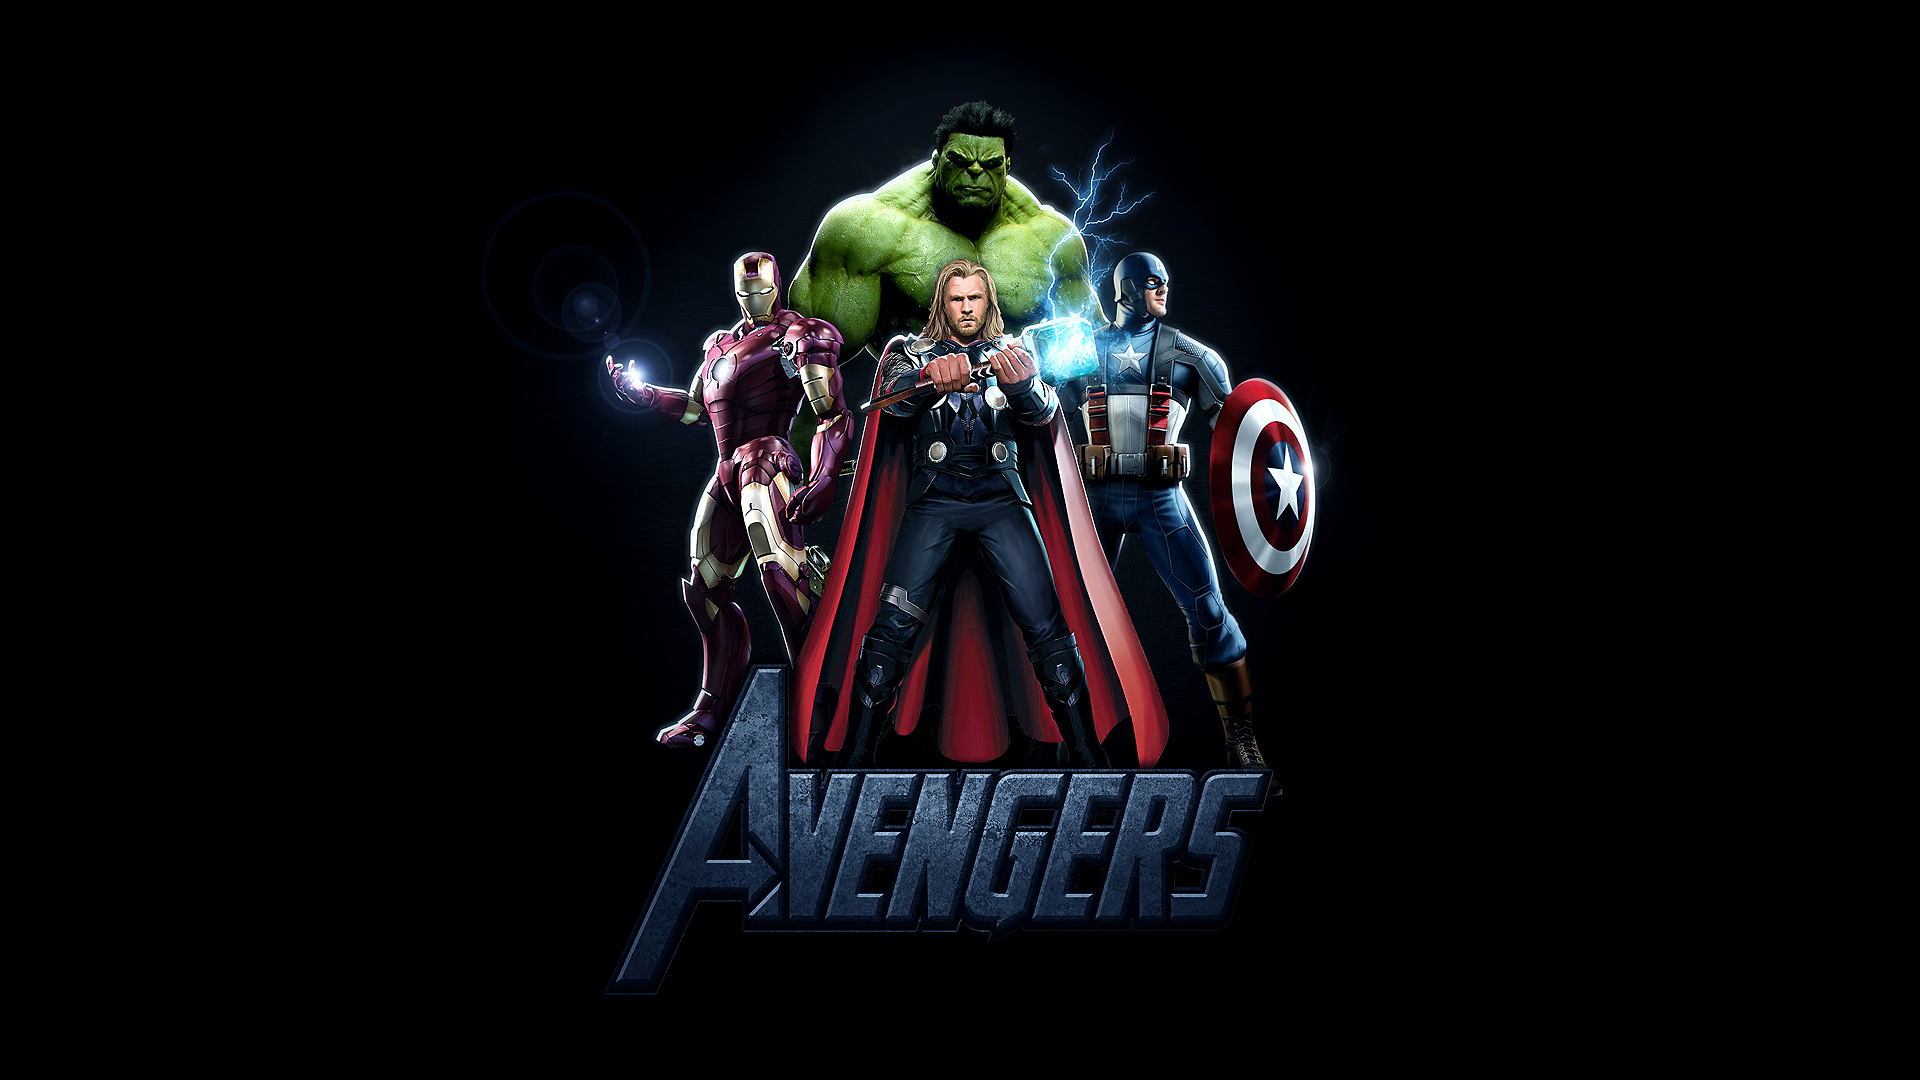 The Avengers Desktop Wallpapers FREE on Latorocom 1920x1080